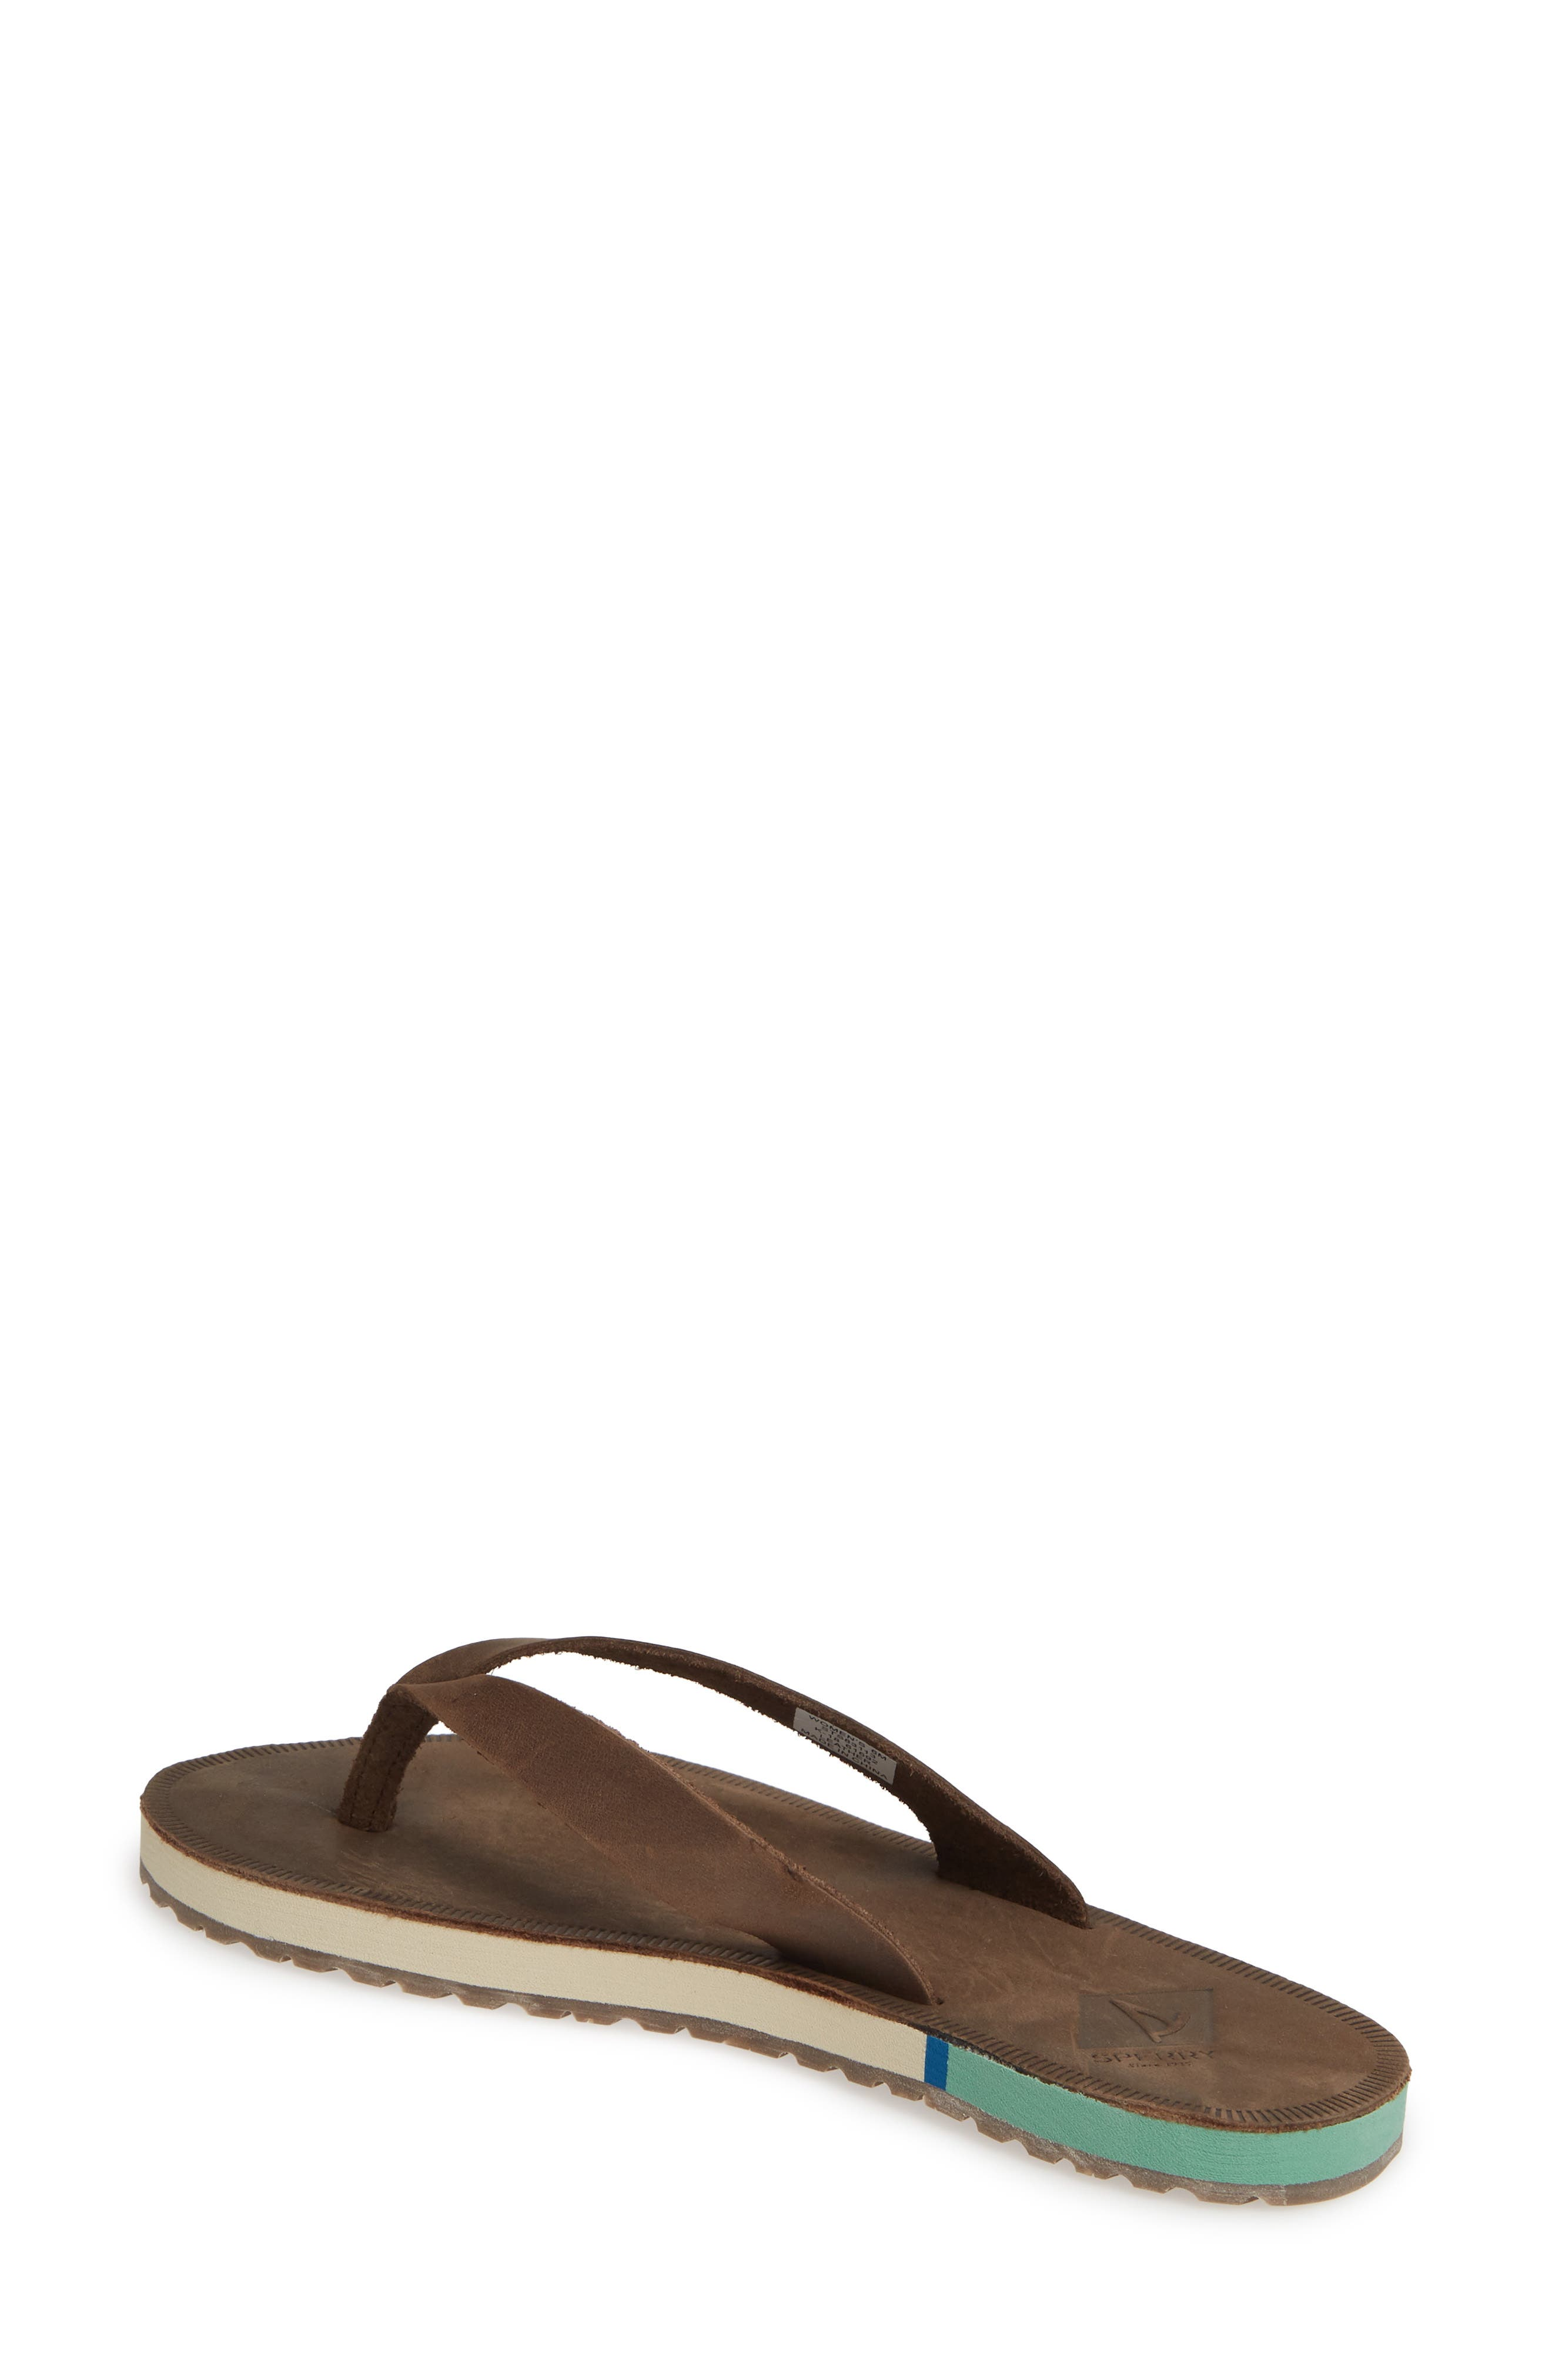 SPERRY, Wharf Flip Flop, Alternate thumbnail 2, color, CHOCOLATE LEATHER